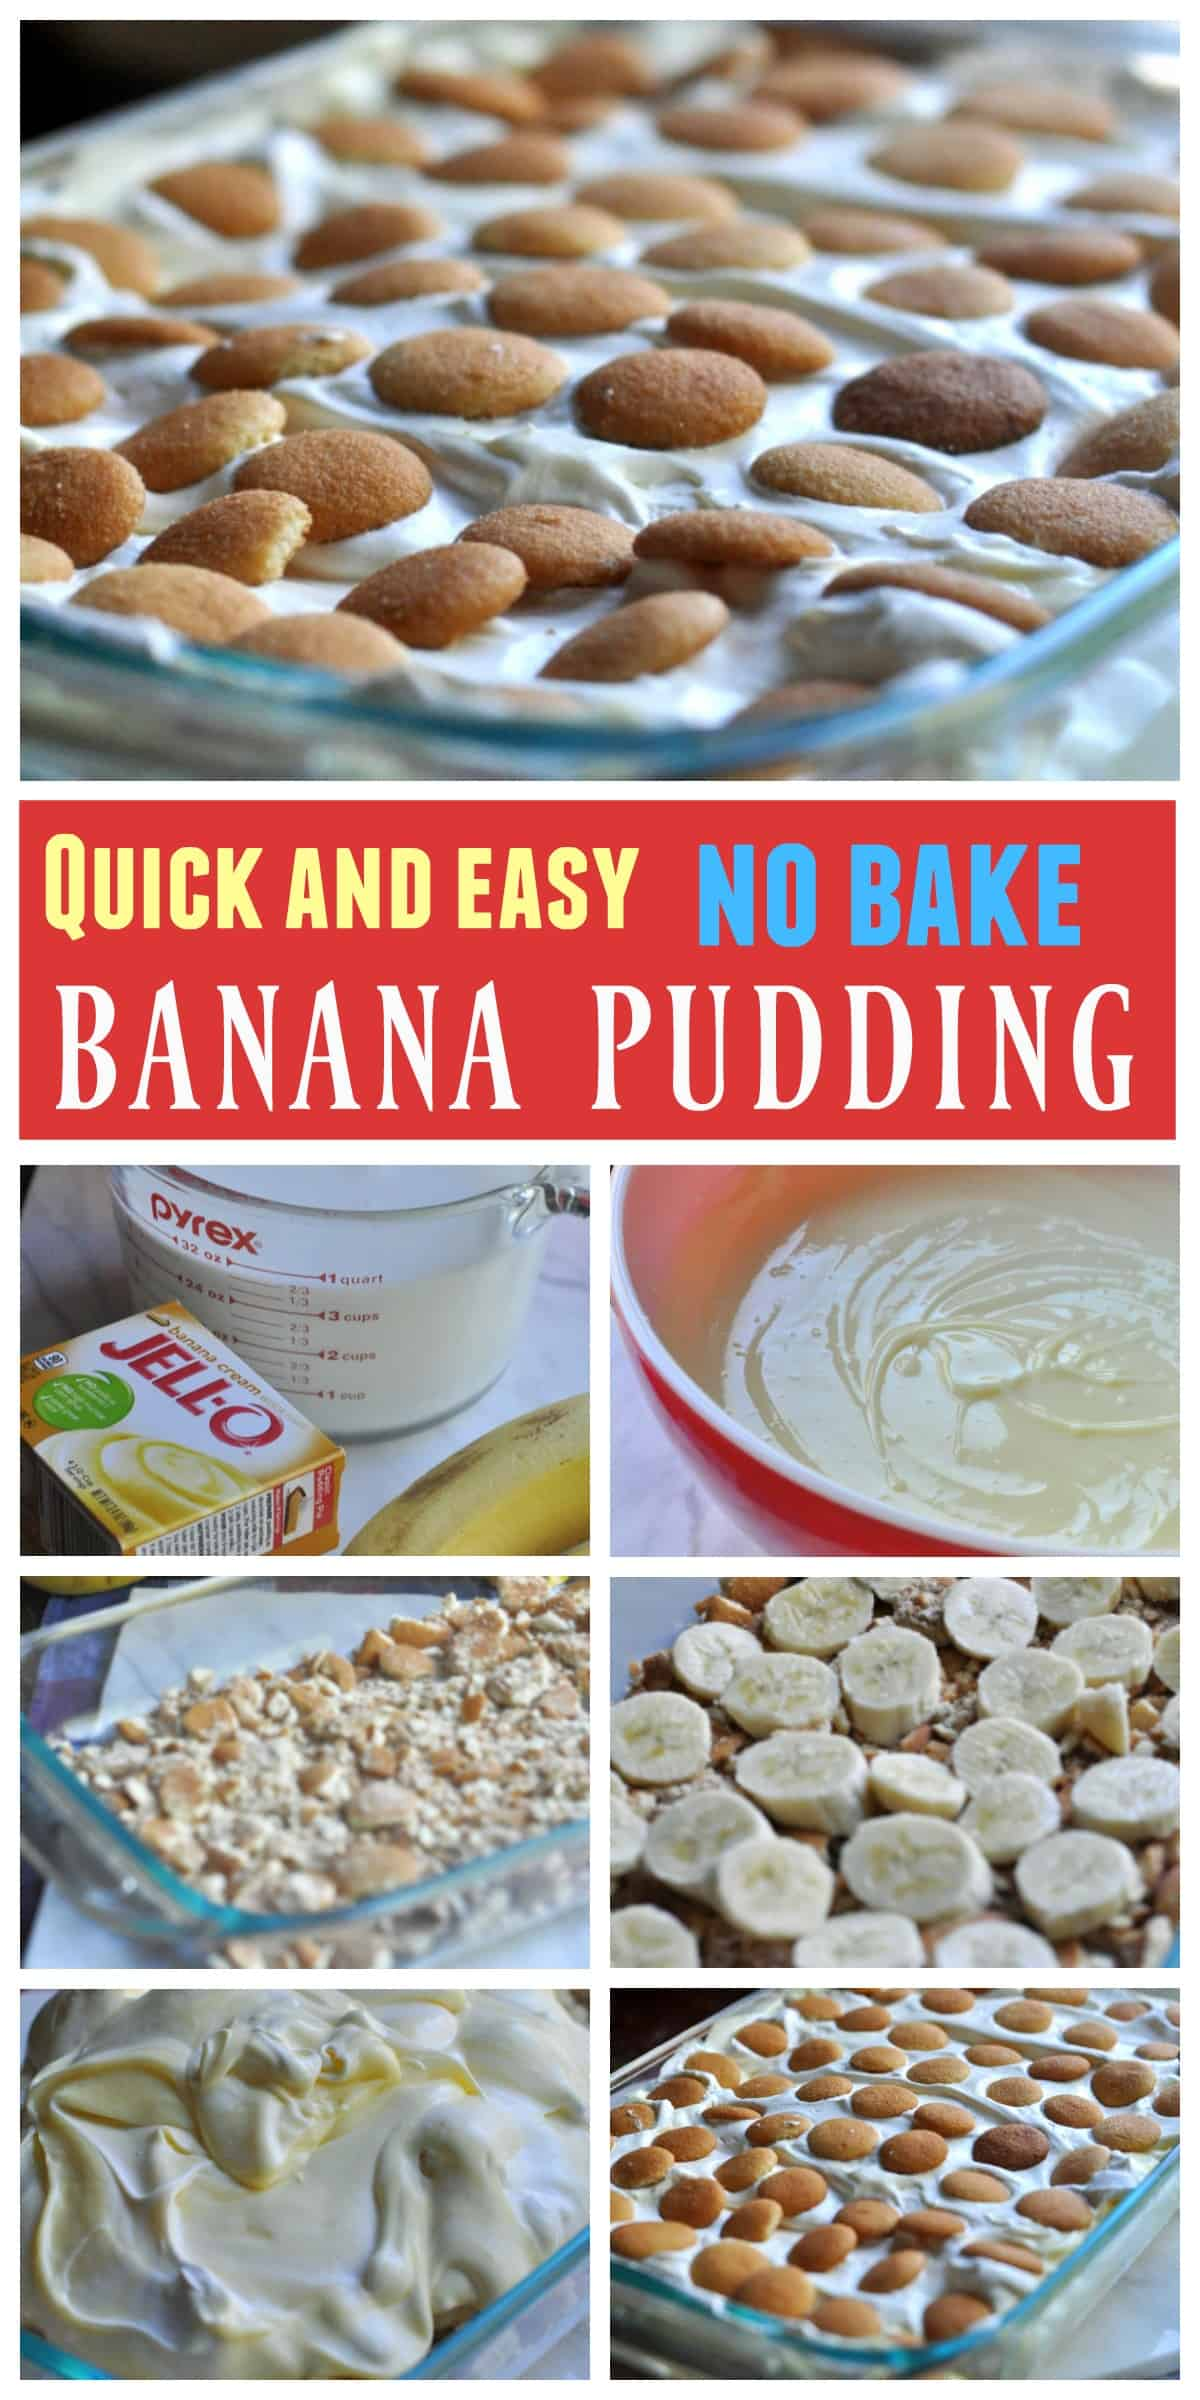 Quick Banana Pudding recipe. Made with Cool Whip, Nilla Wafers, and bananas.